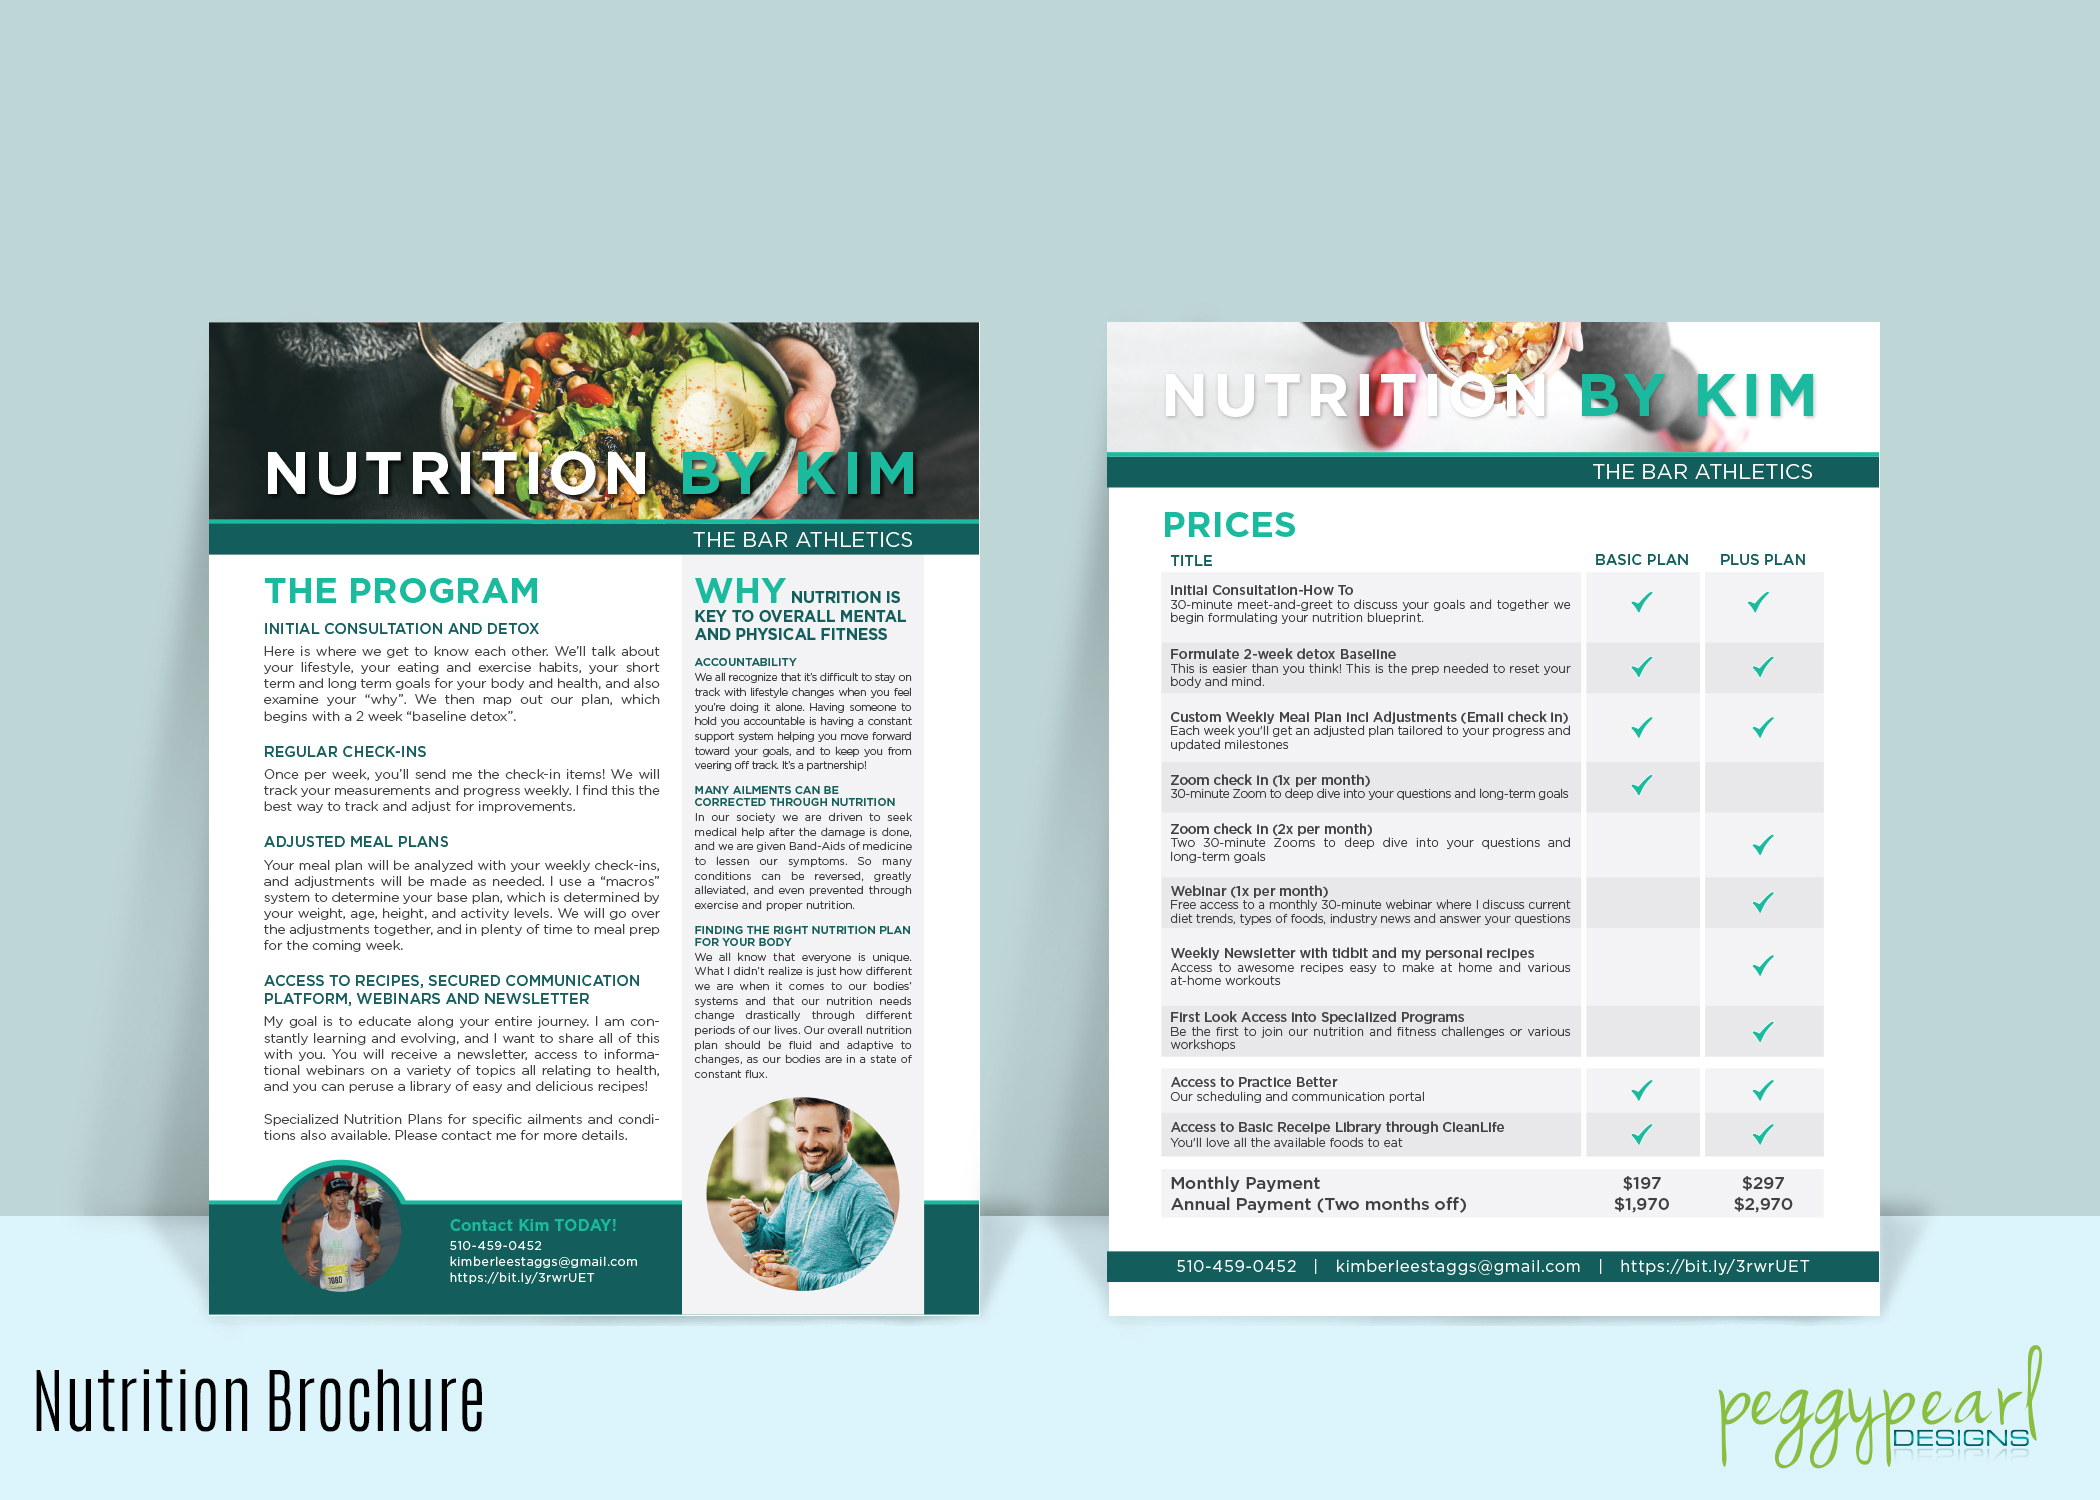 Nutrition Brochure pic1